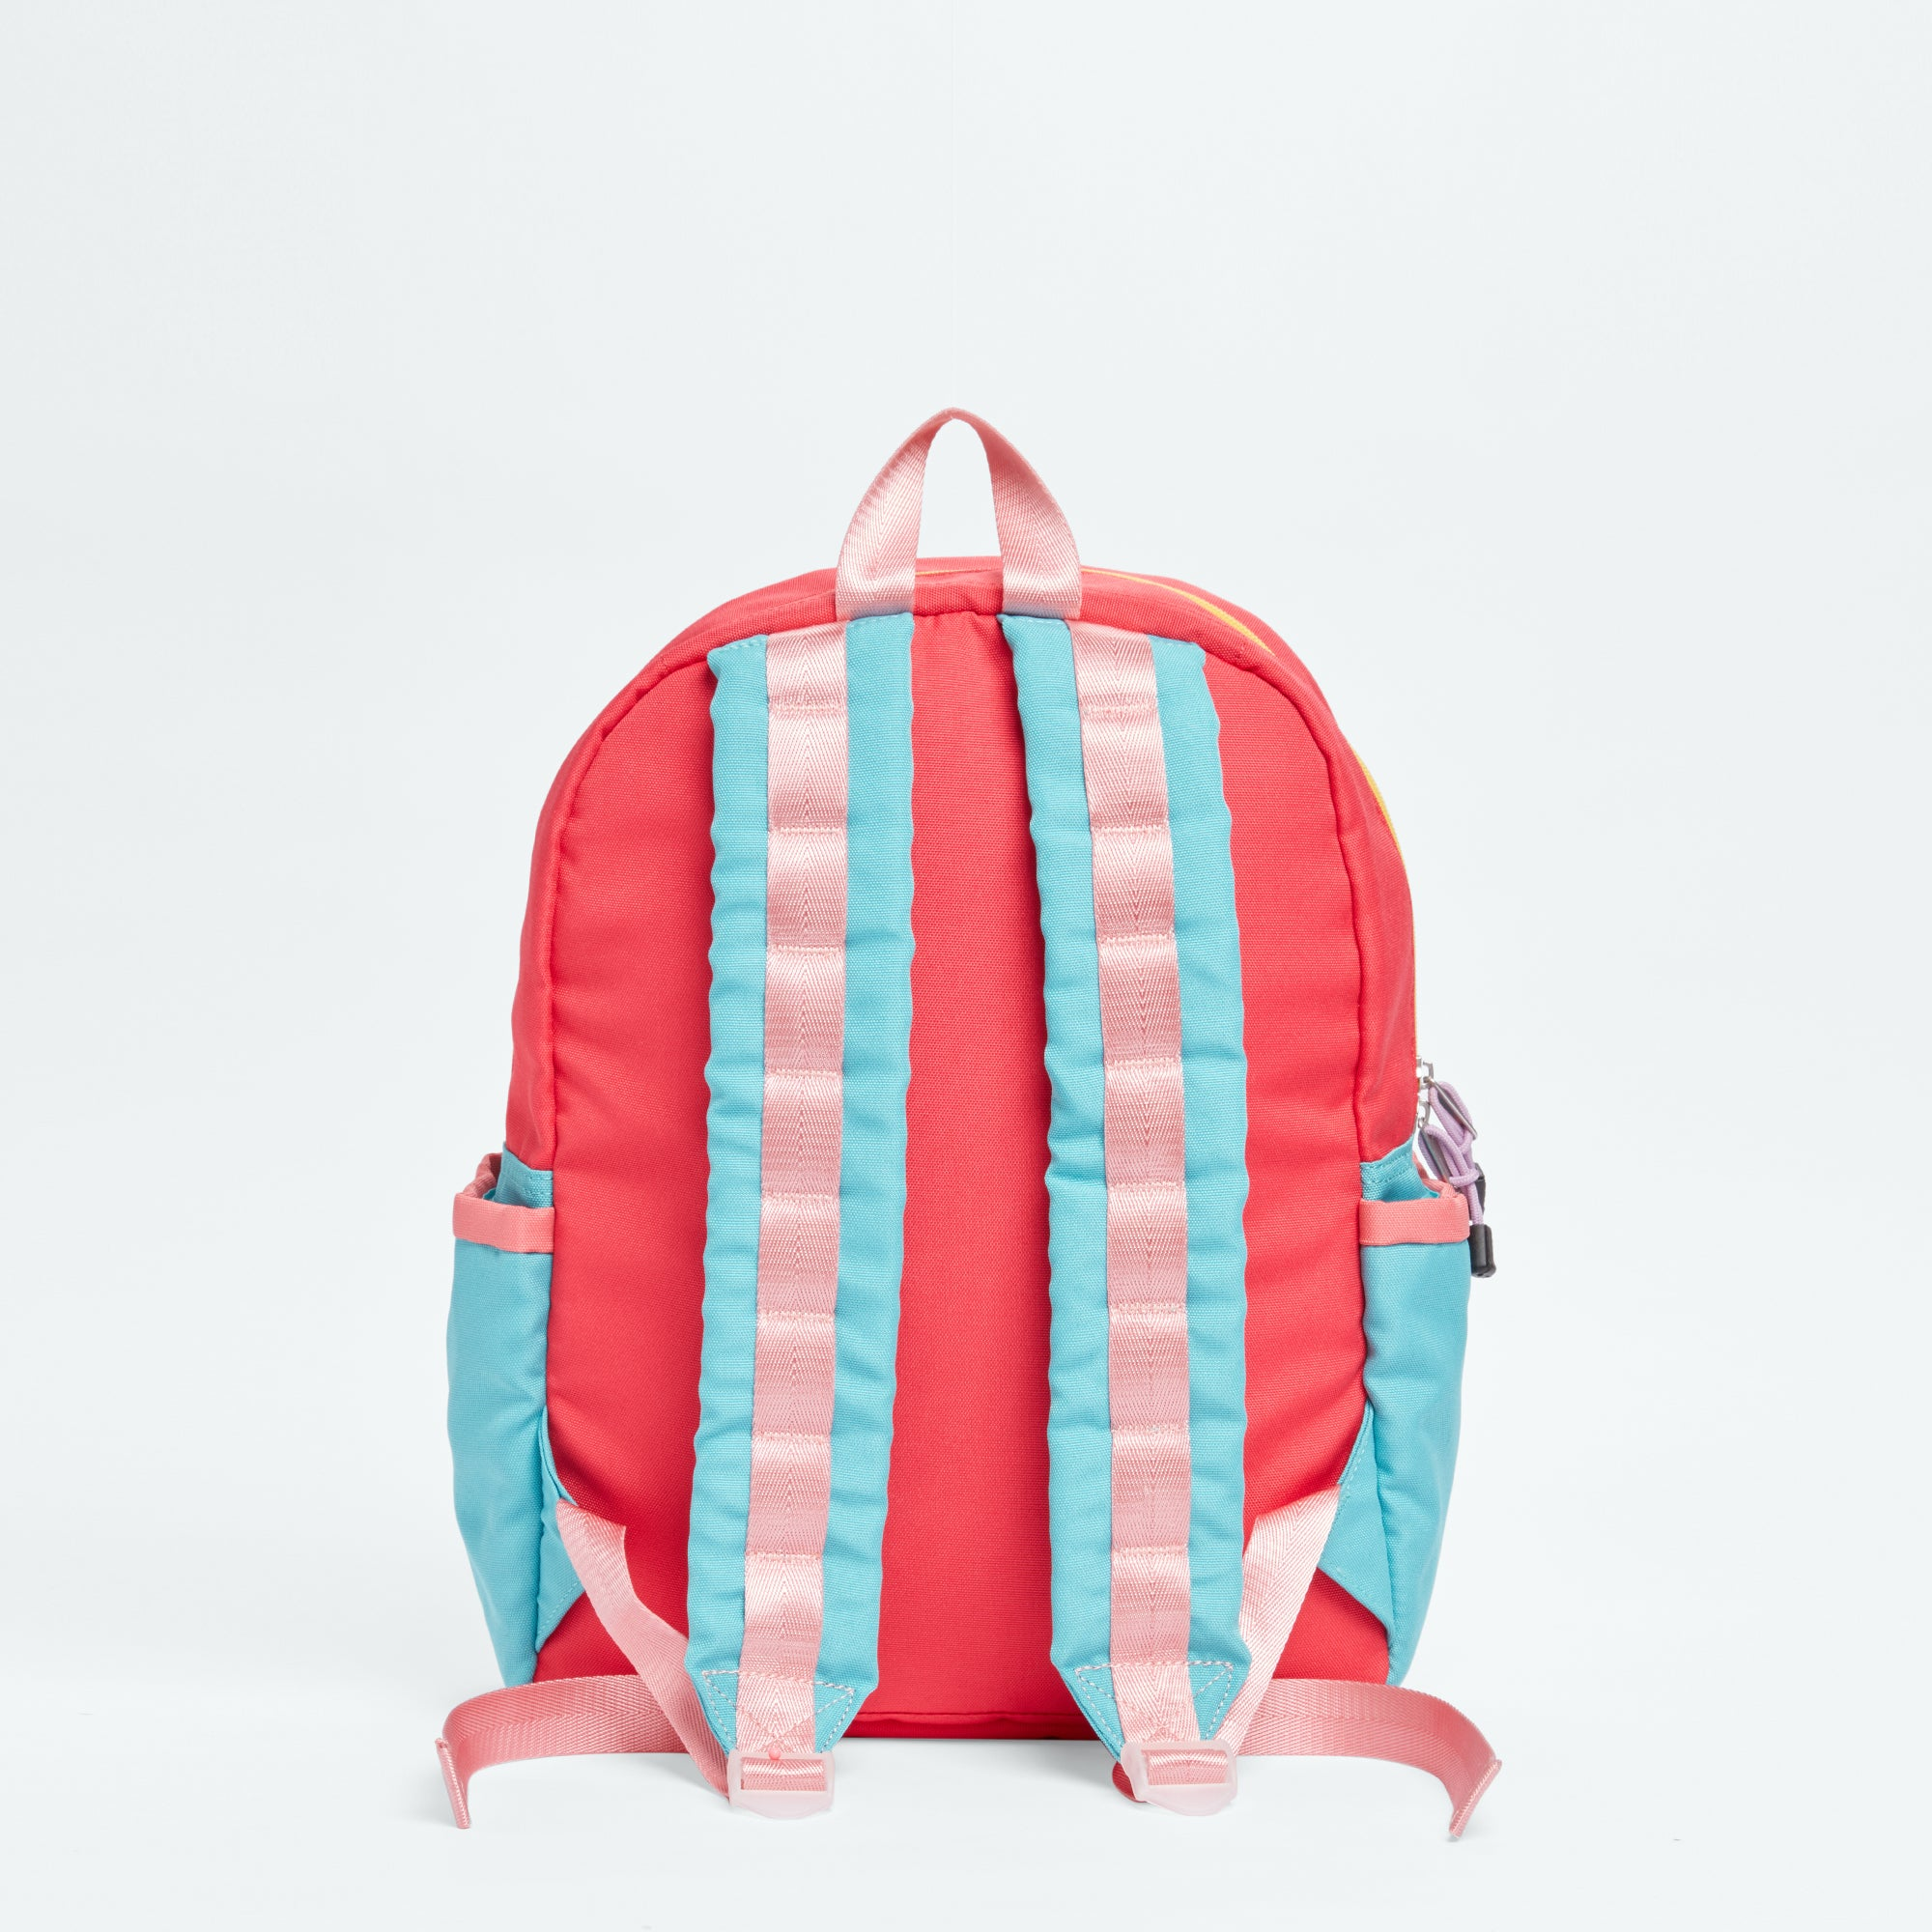 State Backpacks / Kane Backpack / The Itsy Bitsy Boutique Houston Texas